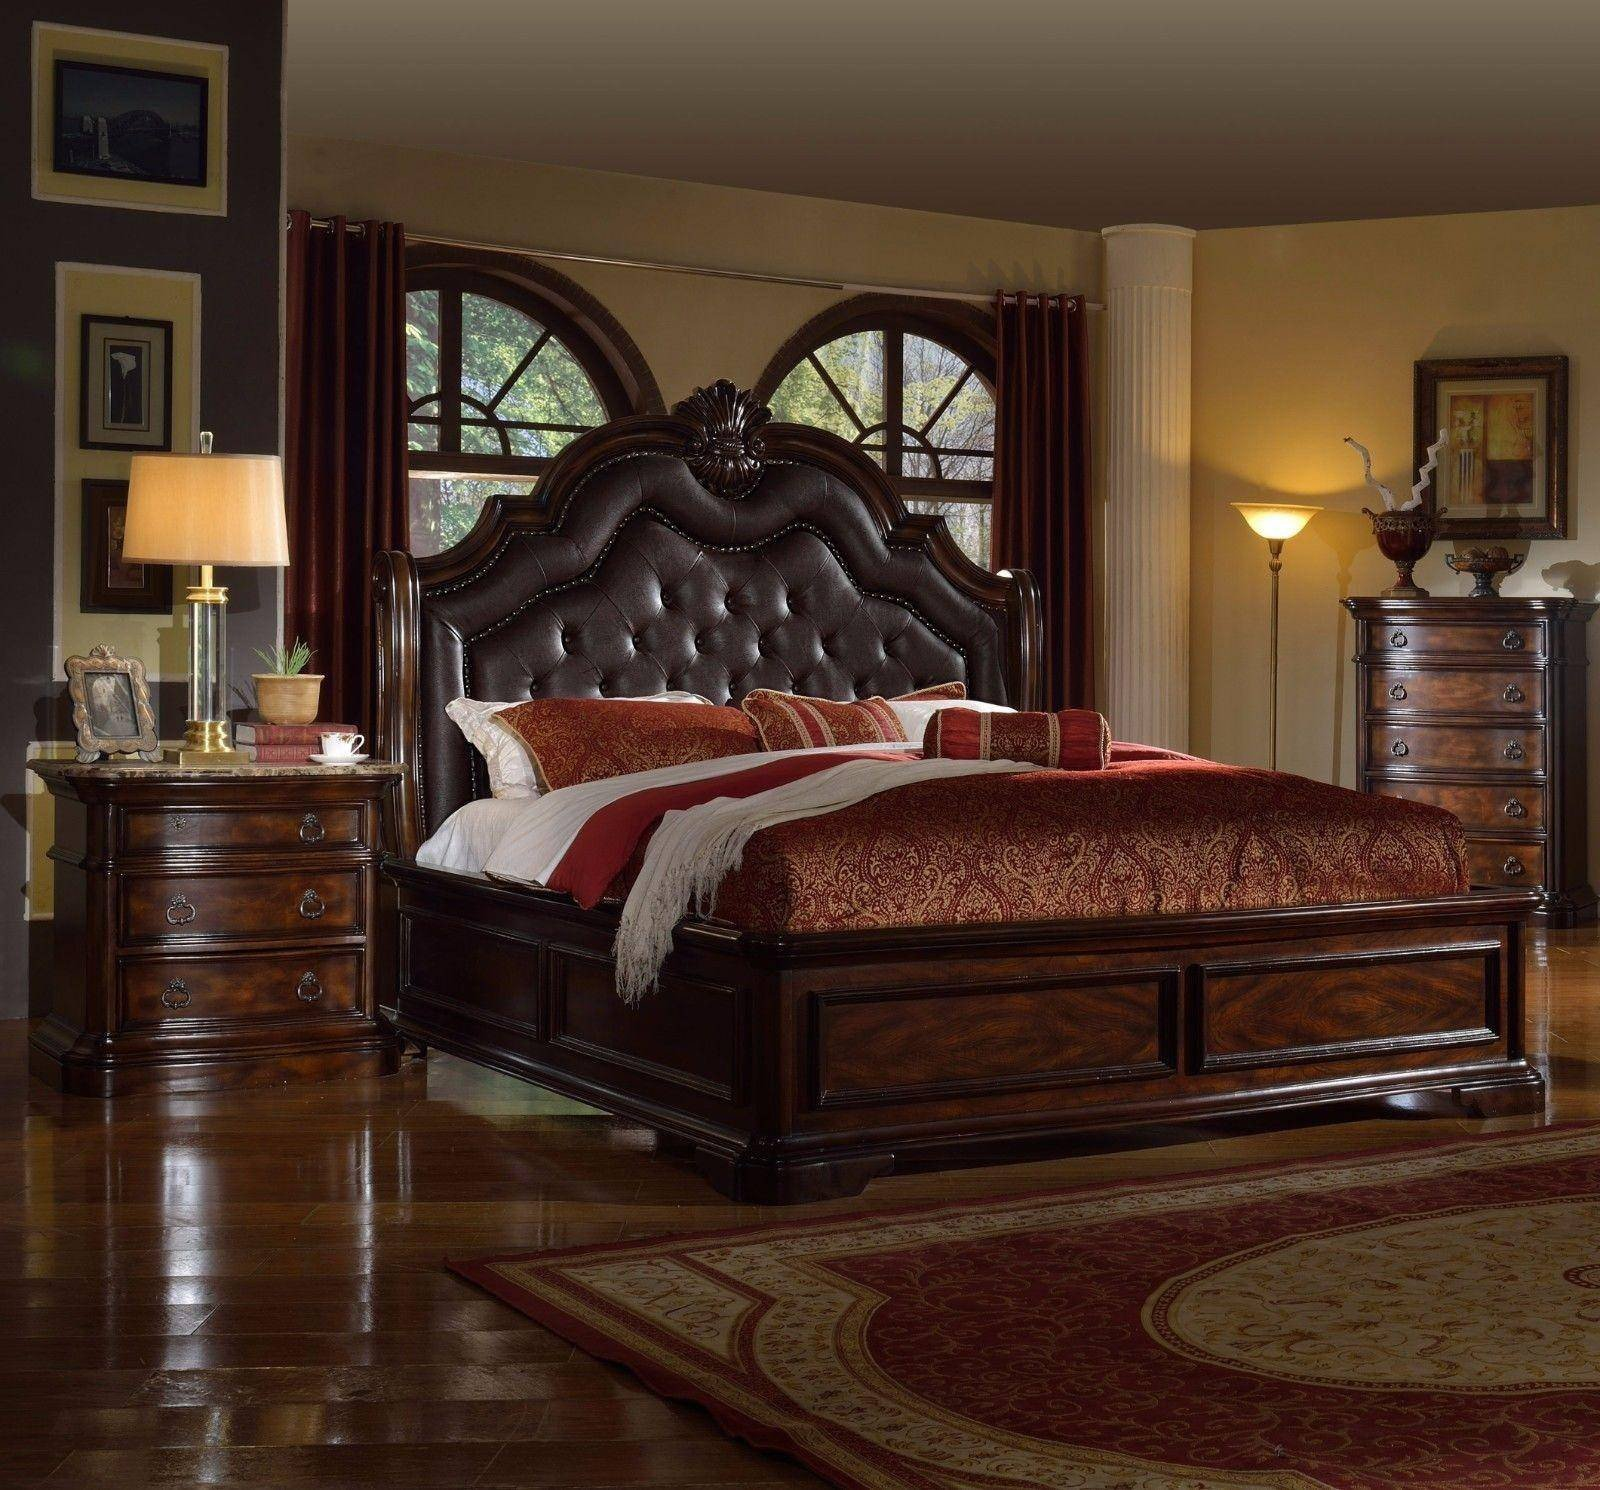 Used King Size Bedroom Set Inspirational Mcferran B6002 Ek Tuscan Rich Brown solid Hardwood Eastern